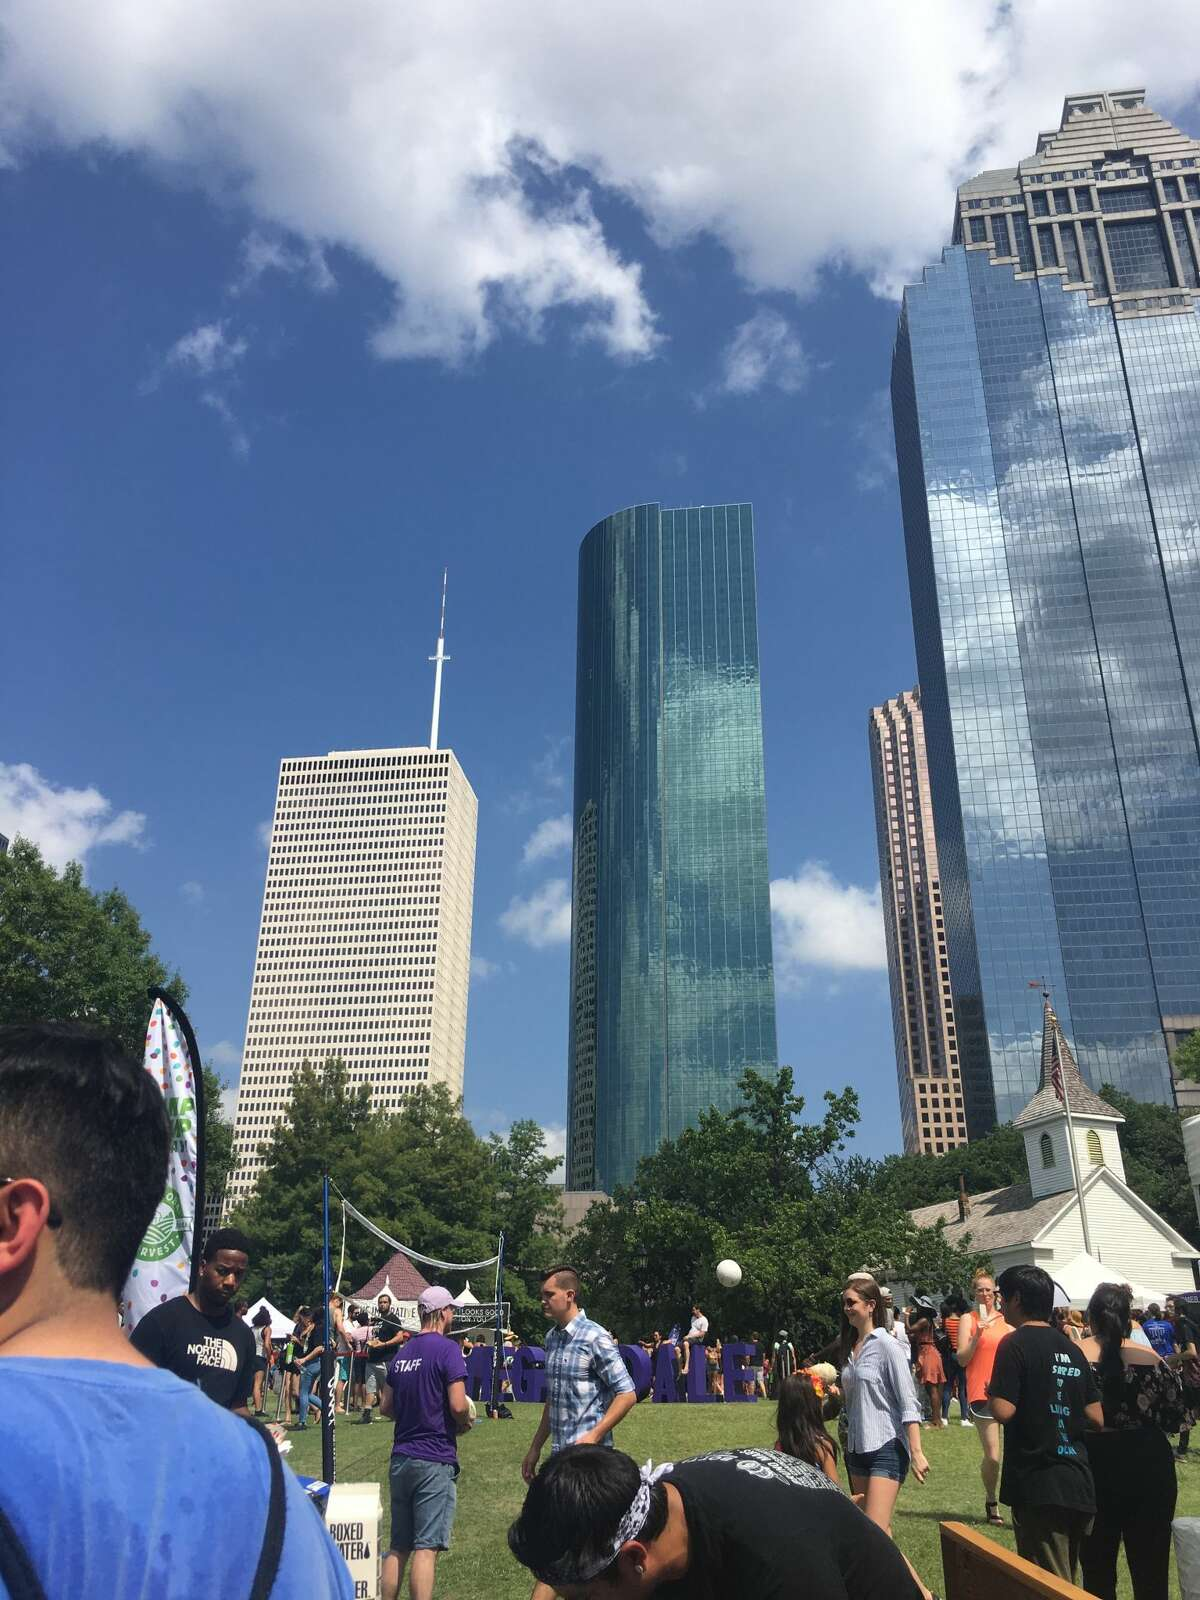 The food truck Mi Patio Cafe & Grill angered Houston's vegan community after it was caught selling meat to patrons at Vegandale Food Drink Festival on June 2 in Sam Houston Park.